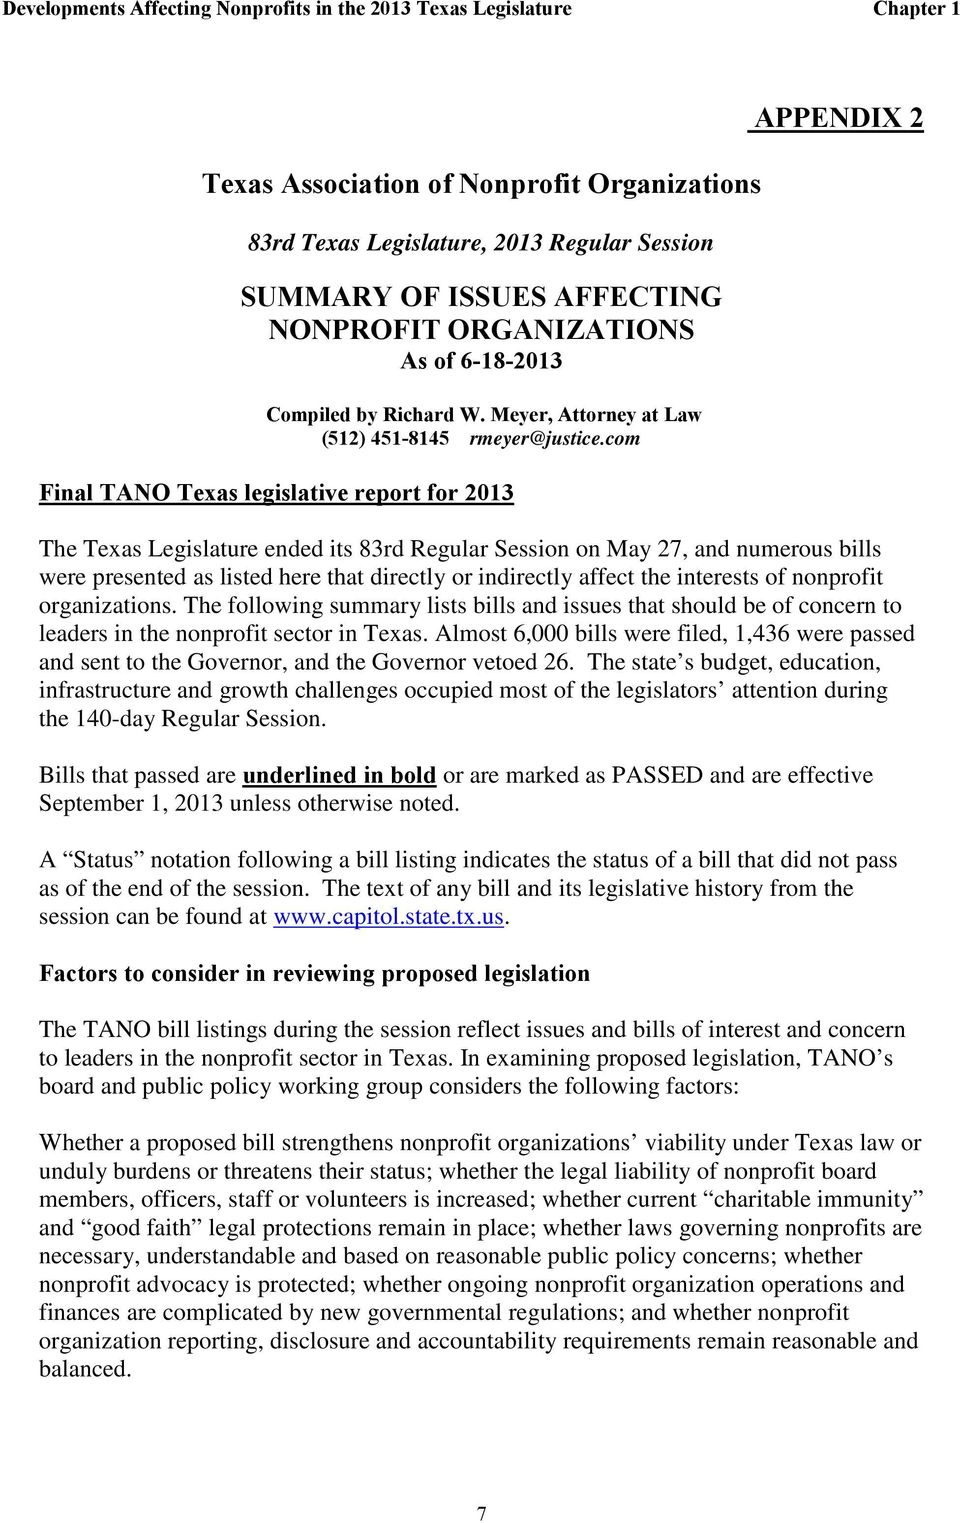 com Final TANO Texas legislative report for 2013 APPENDIX 2 The Texas Legislature ended its 83rd Regular Session on May 27, and numerous bills were presented as listed here that directly or